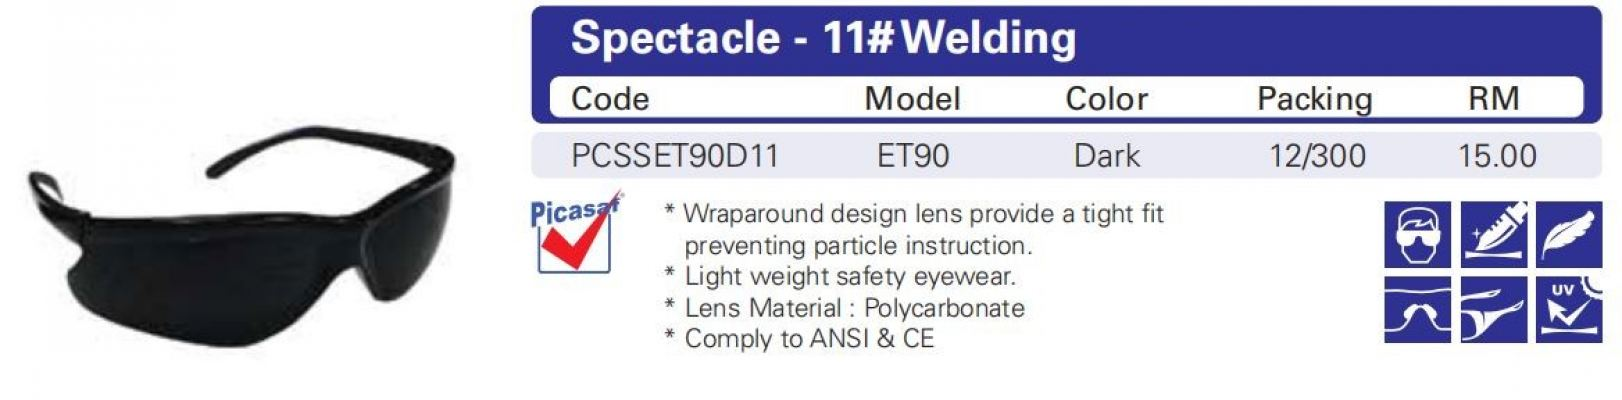 Eyewear - ET90 11# Welding - Dark